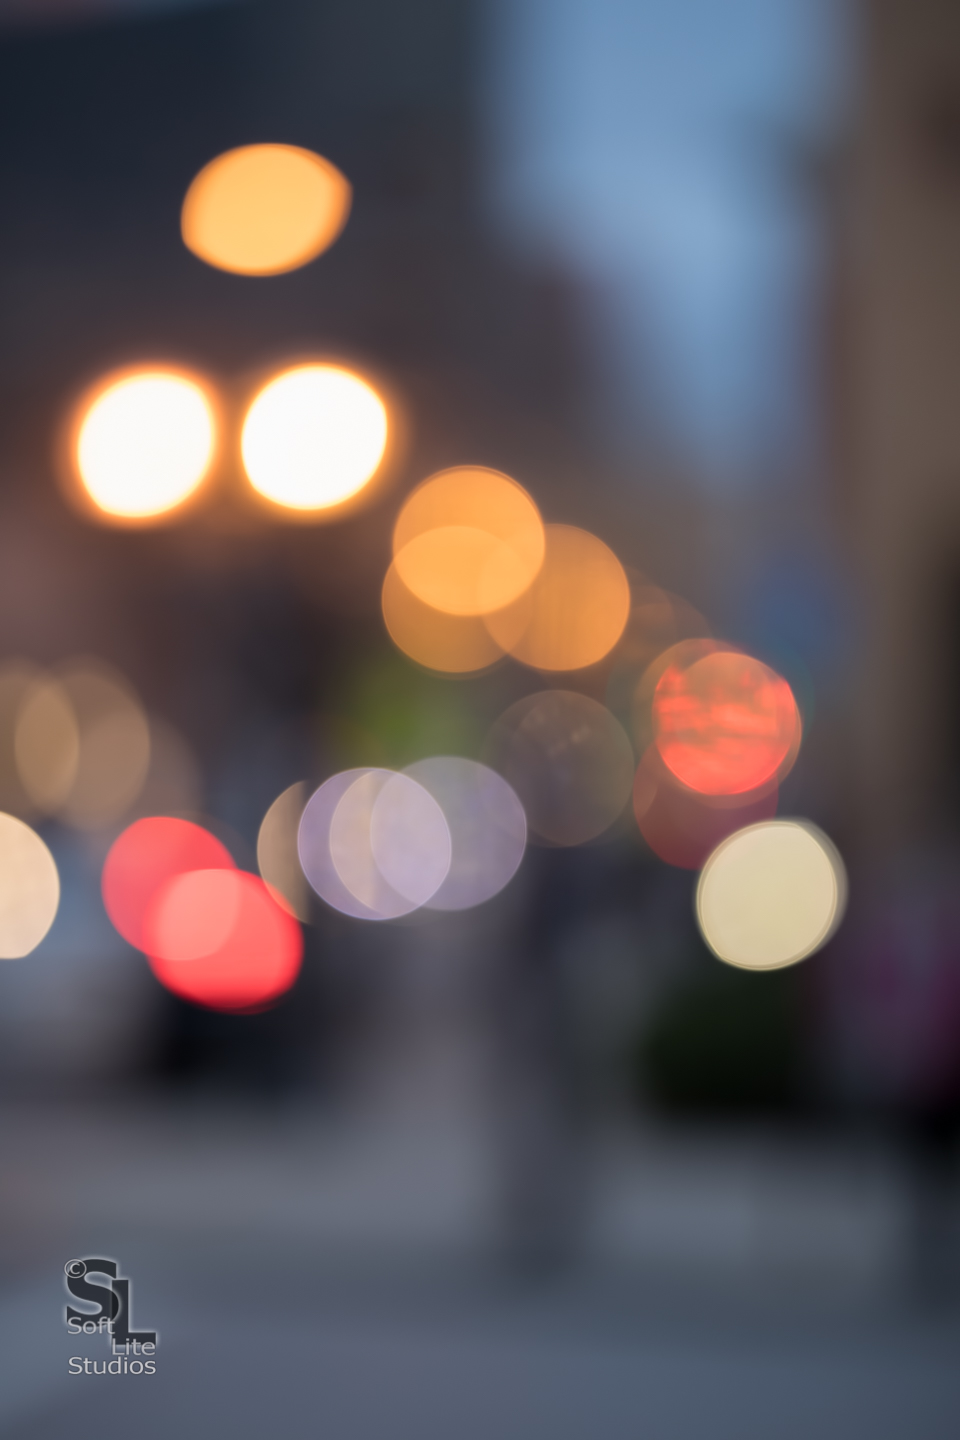 Bokeh Out. Copyright 2017, Tim Neumann (ISO 400, 1/160 @ f/1.8 - Canon 5D Mark IV, Sigma 135mm F1.8 DG HSM | A)